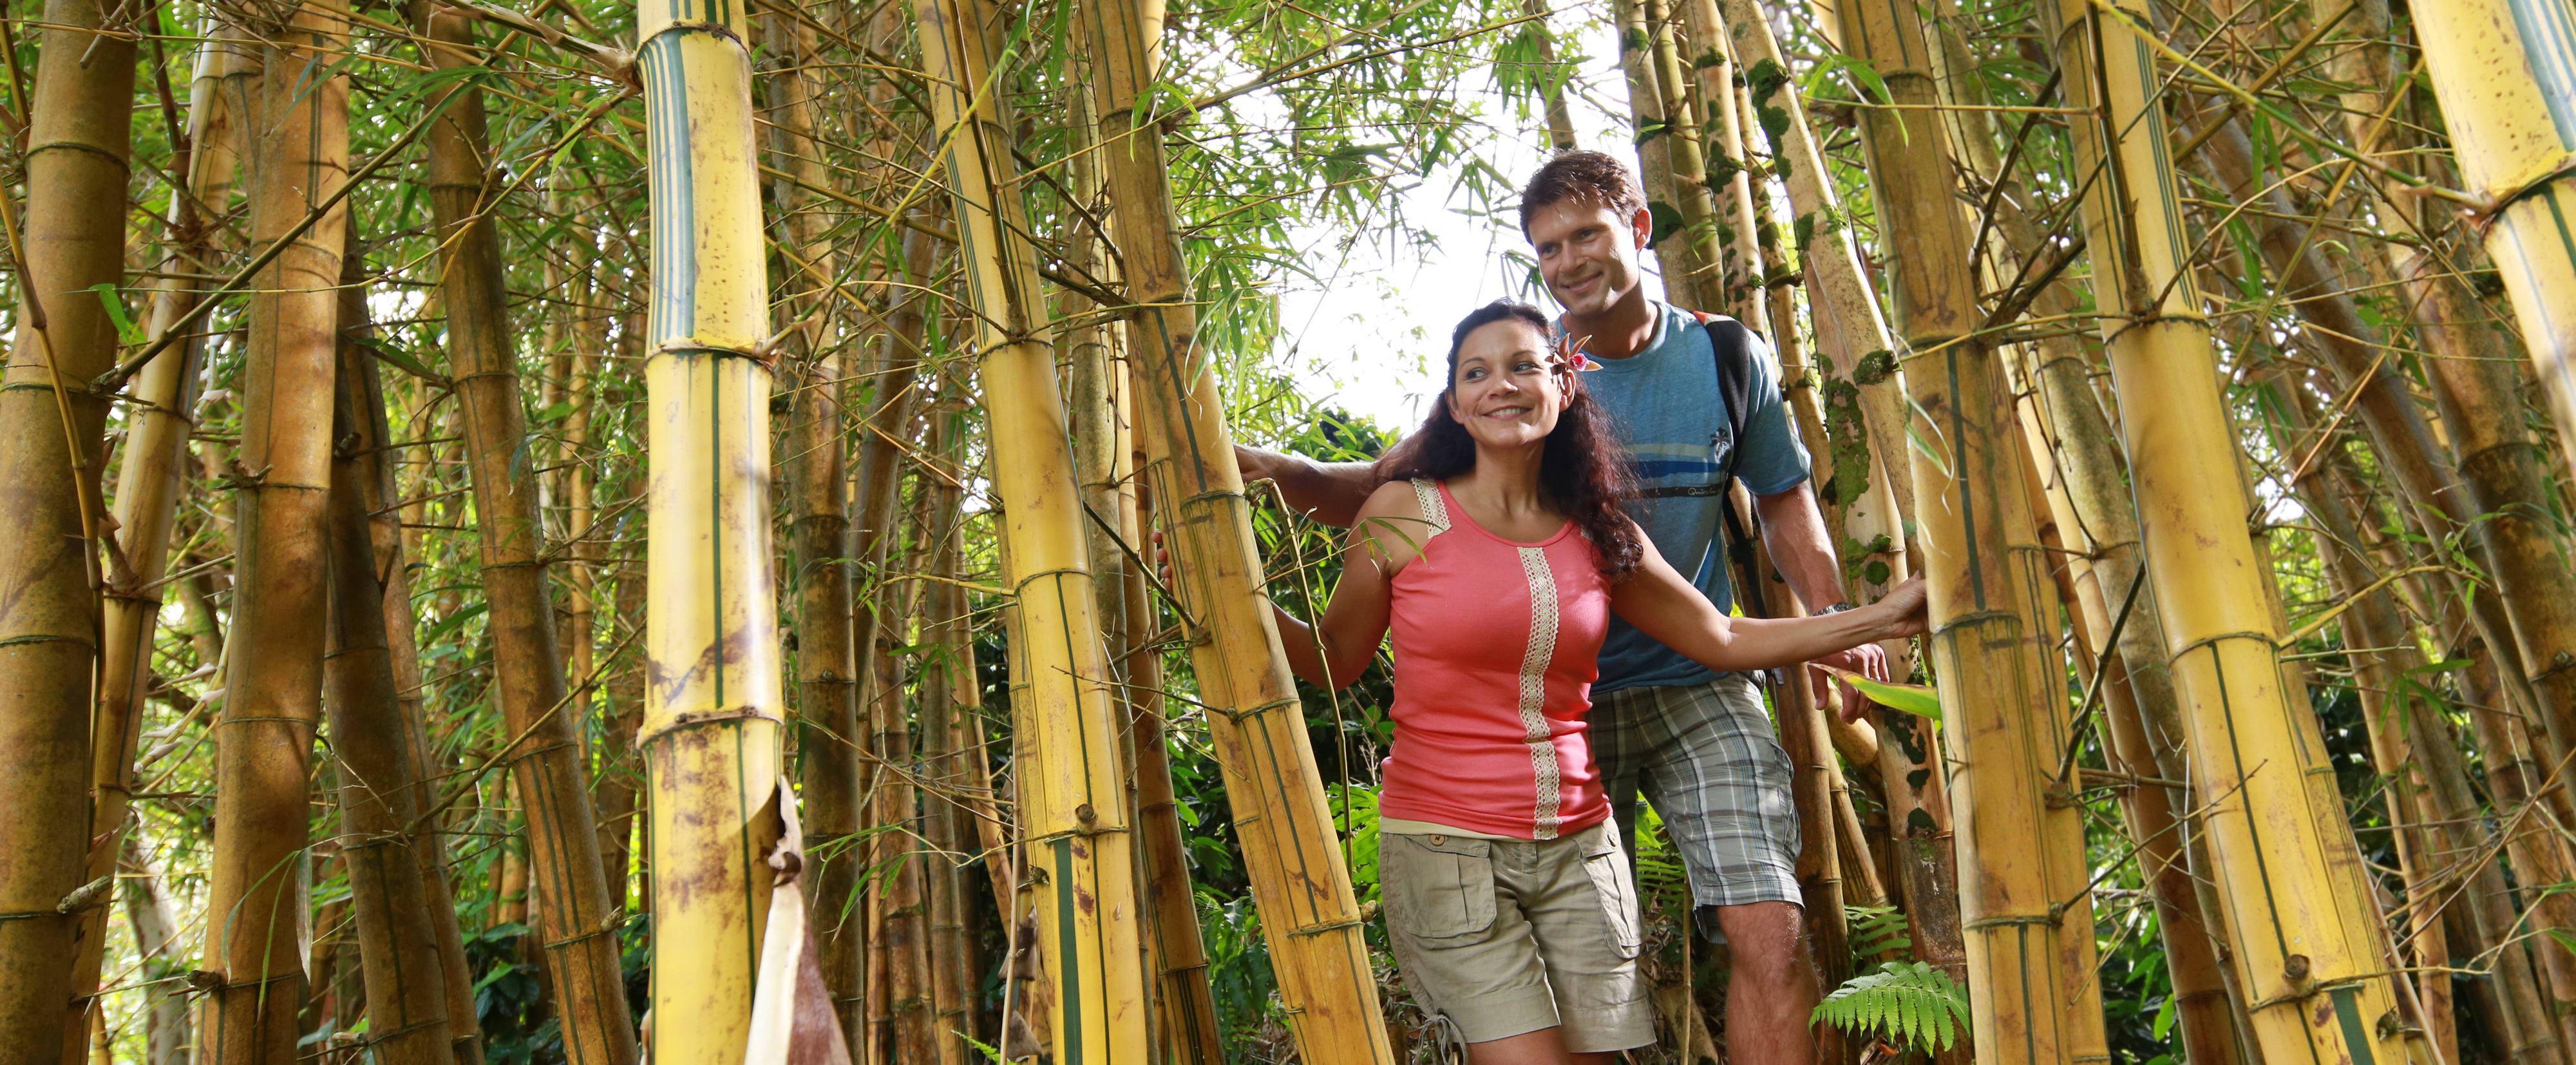 A woman and man make their way through a gap in a tall thicket of woody bamboo